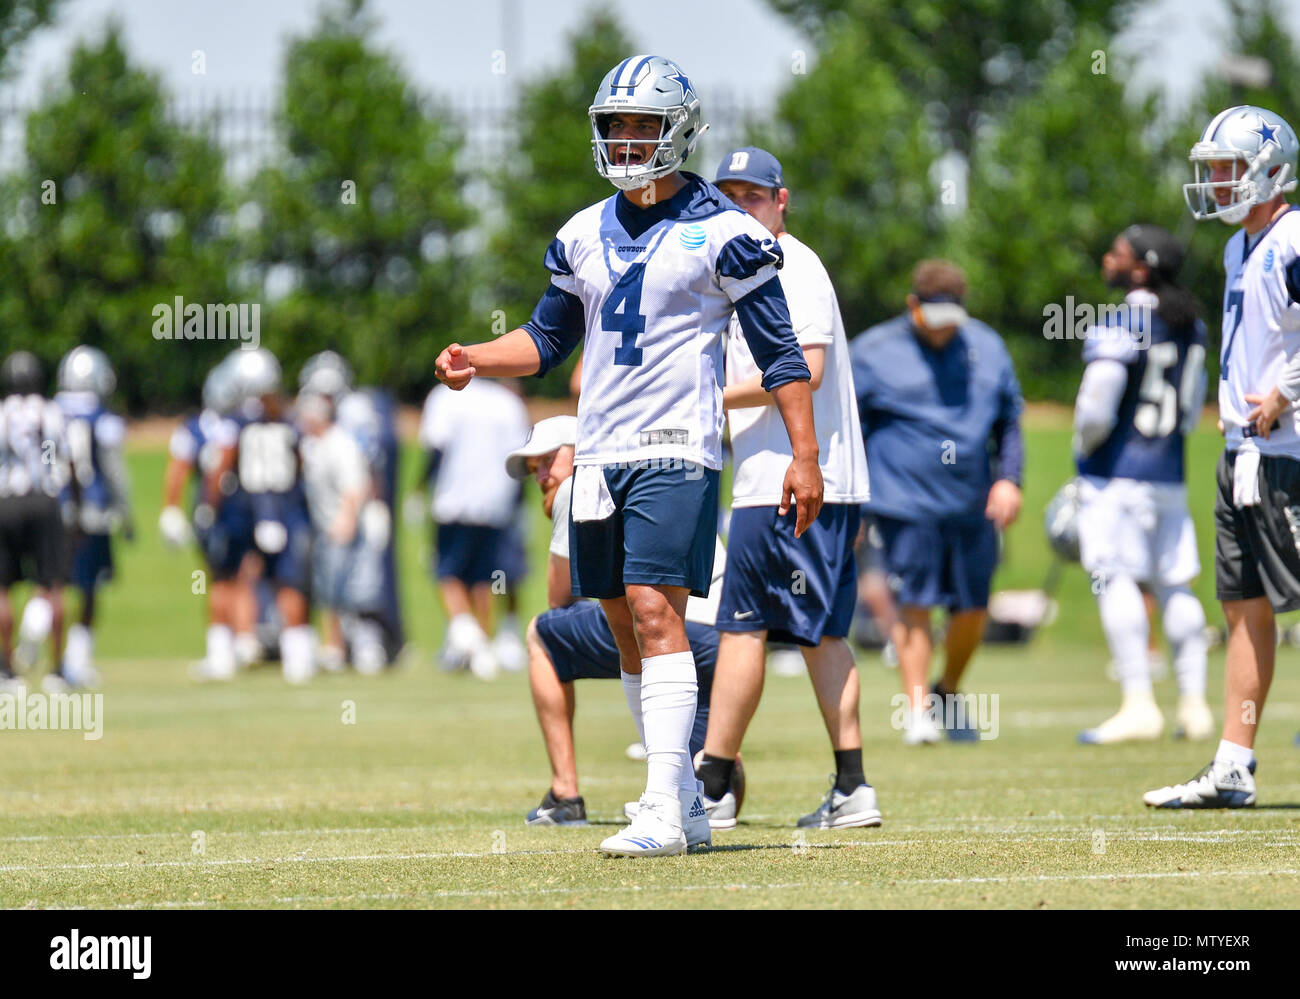 dallas cowboys youth academy minicamp